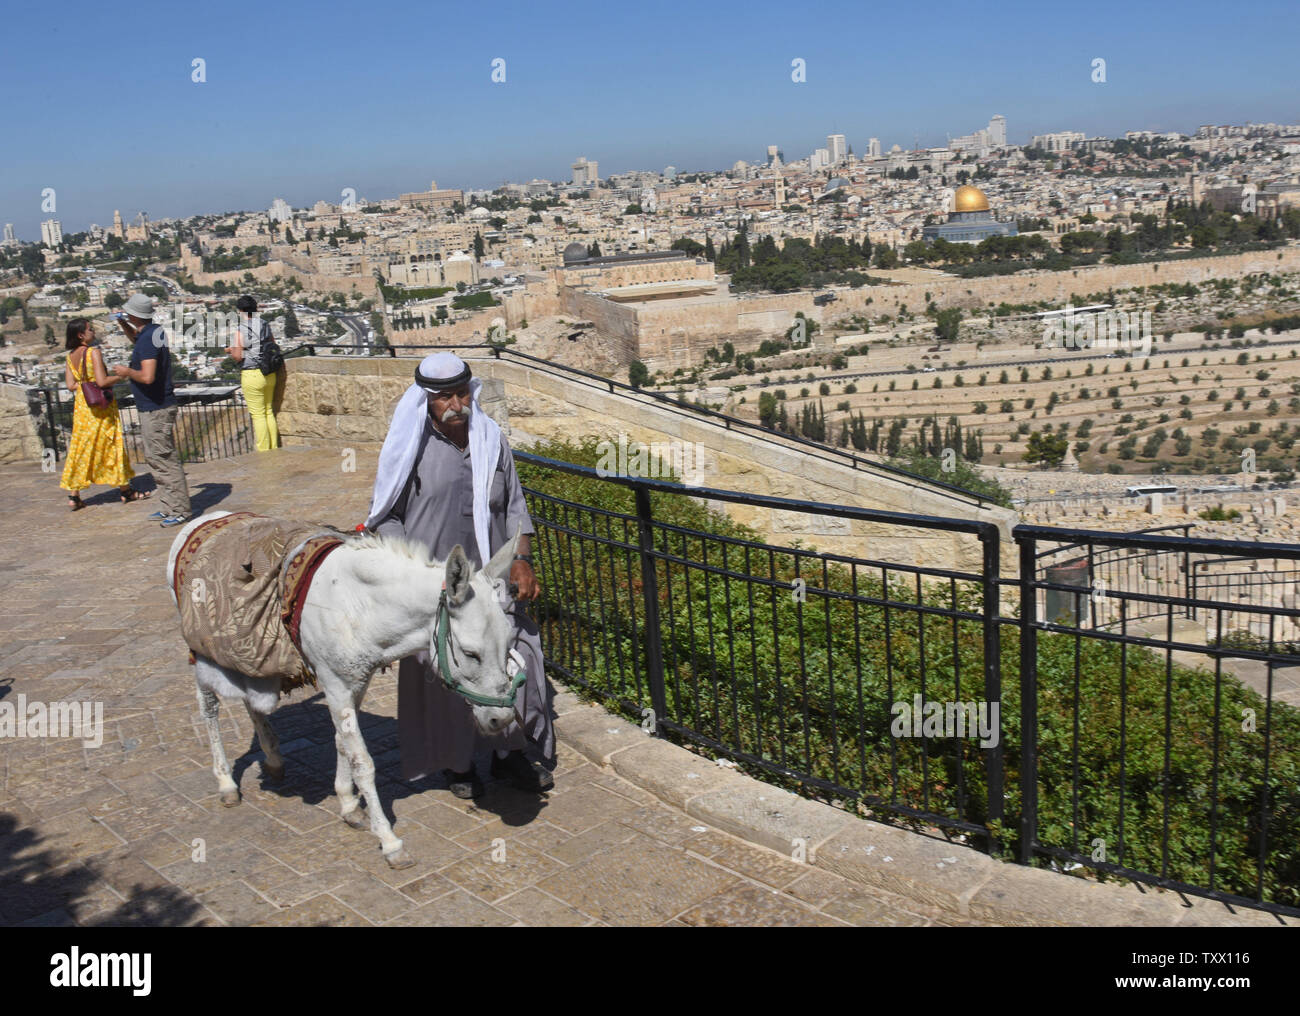 A Palestinians walk with a donkey on the Mt. of Olives, overlooking the Old City of Jerusalem, June 25, 2018. Prince William will  receive a briefing on the history and geography of Jerusalem's Old City from the Mt. of Olives this week, on the first state visit to the Holy Land by a member of the royal family. Israeli ministers slammed Prince William's official itinerary because it describes the Old City of Jerusalem as being in Occupied Palestinian Territories.  Photo by Debbie Hill/UPI - Stock Image